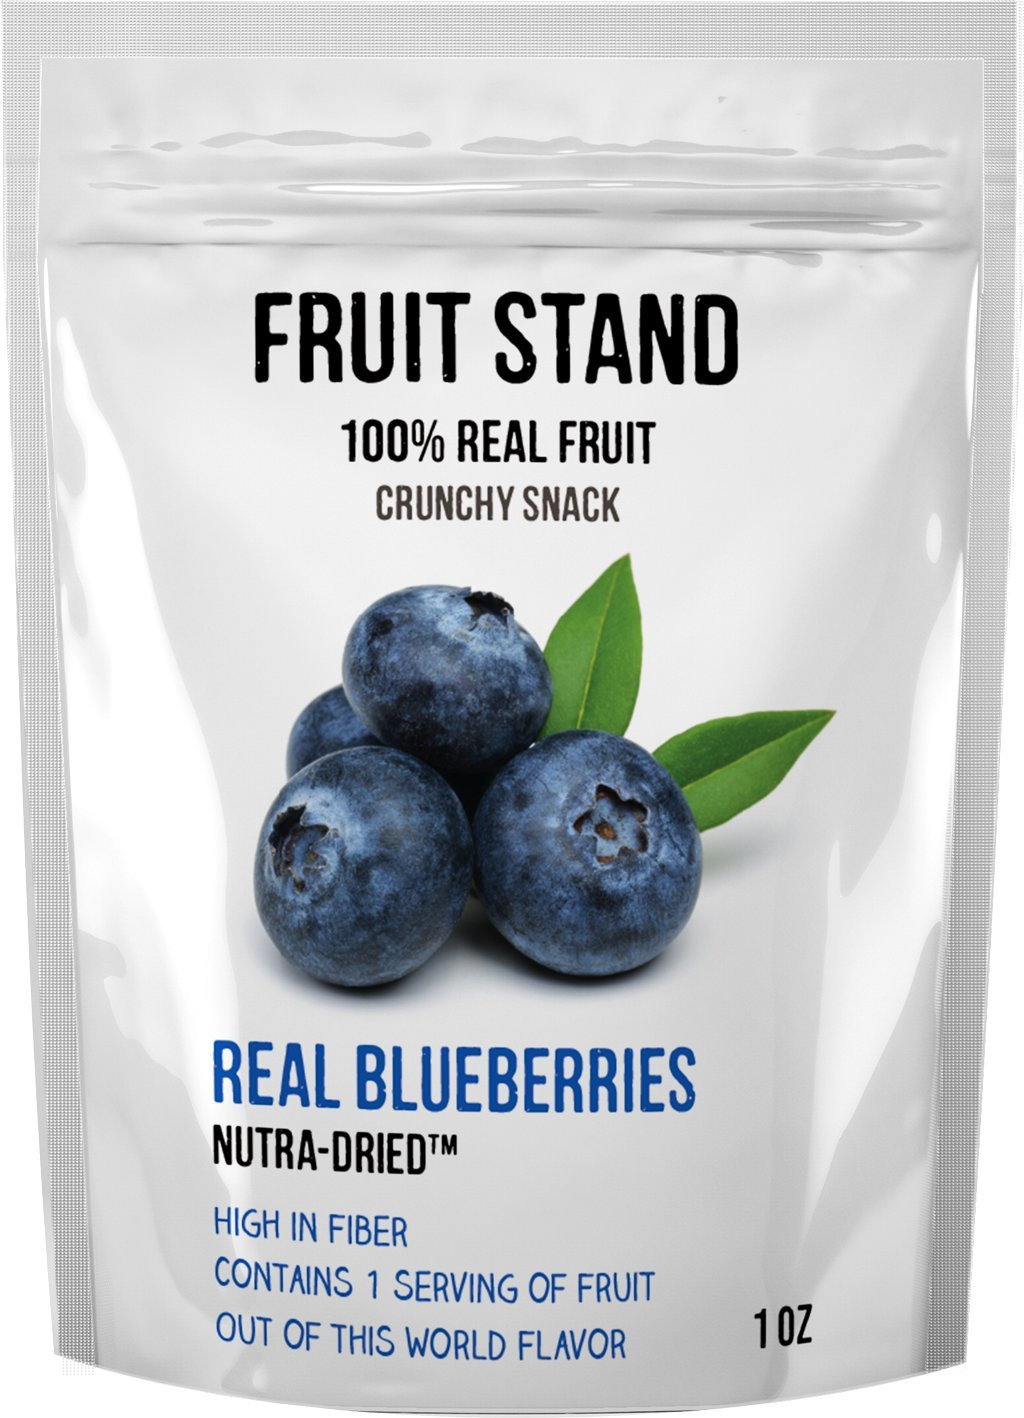 Fruit Stand Real Blueberries, 1 Ounce (Pack of 6) by Fruit Stand